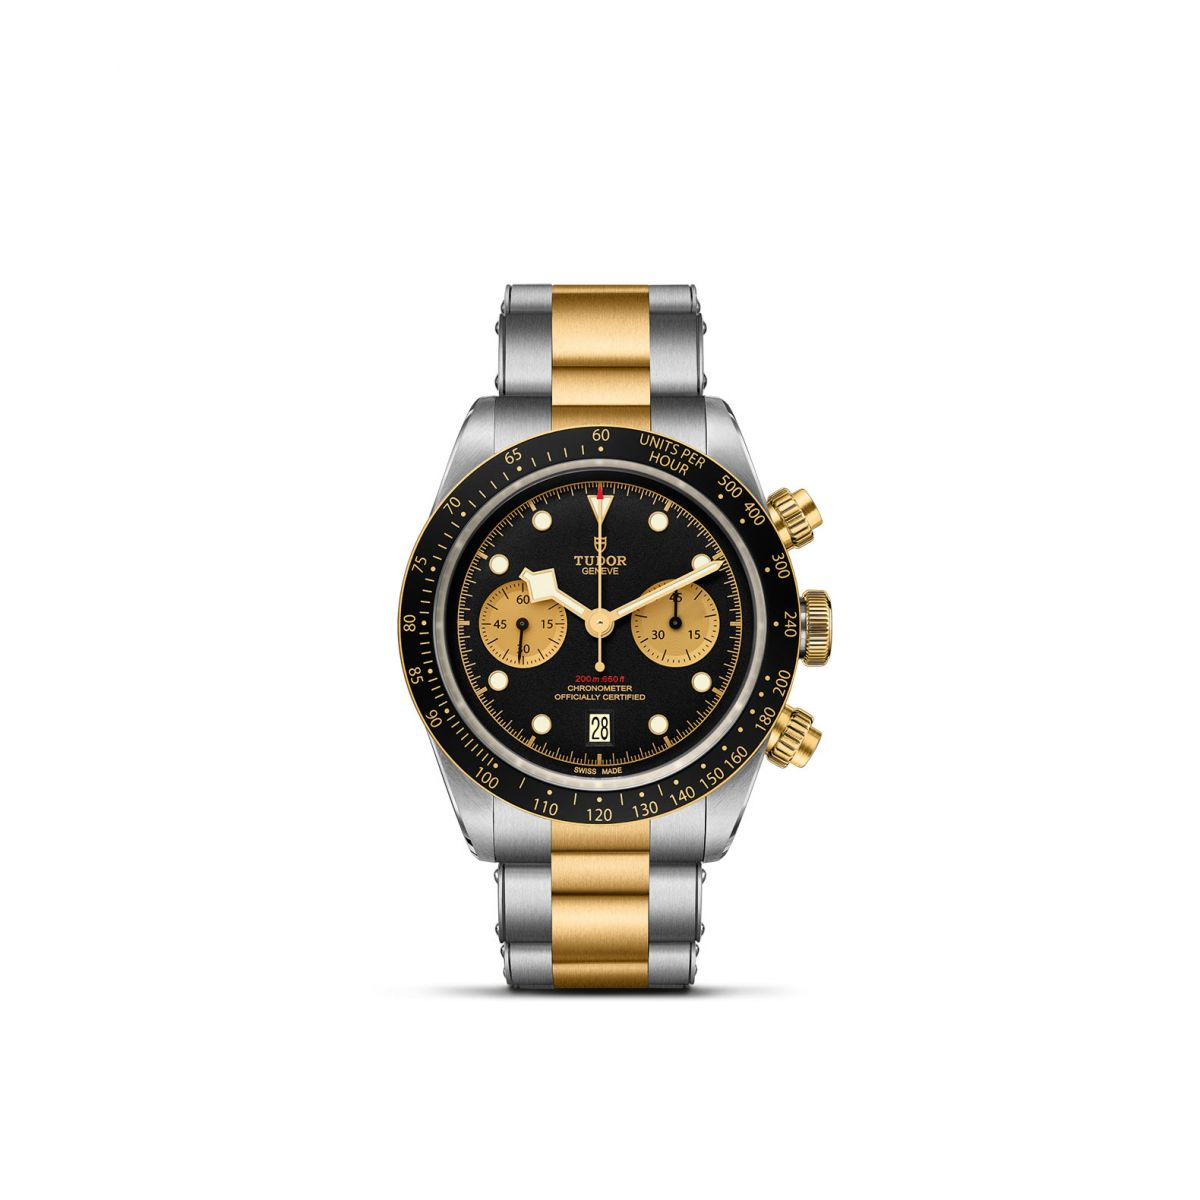 TUDOR Black Bay Chrono S&G ACC/ORO GIALLO NERO/CHAMP